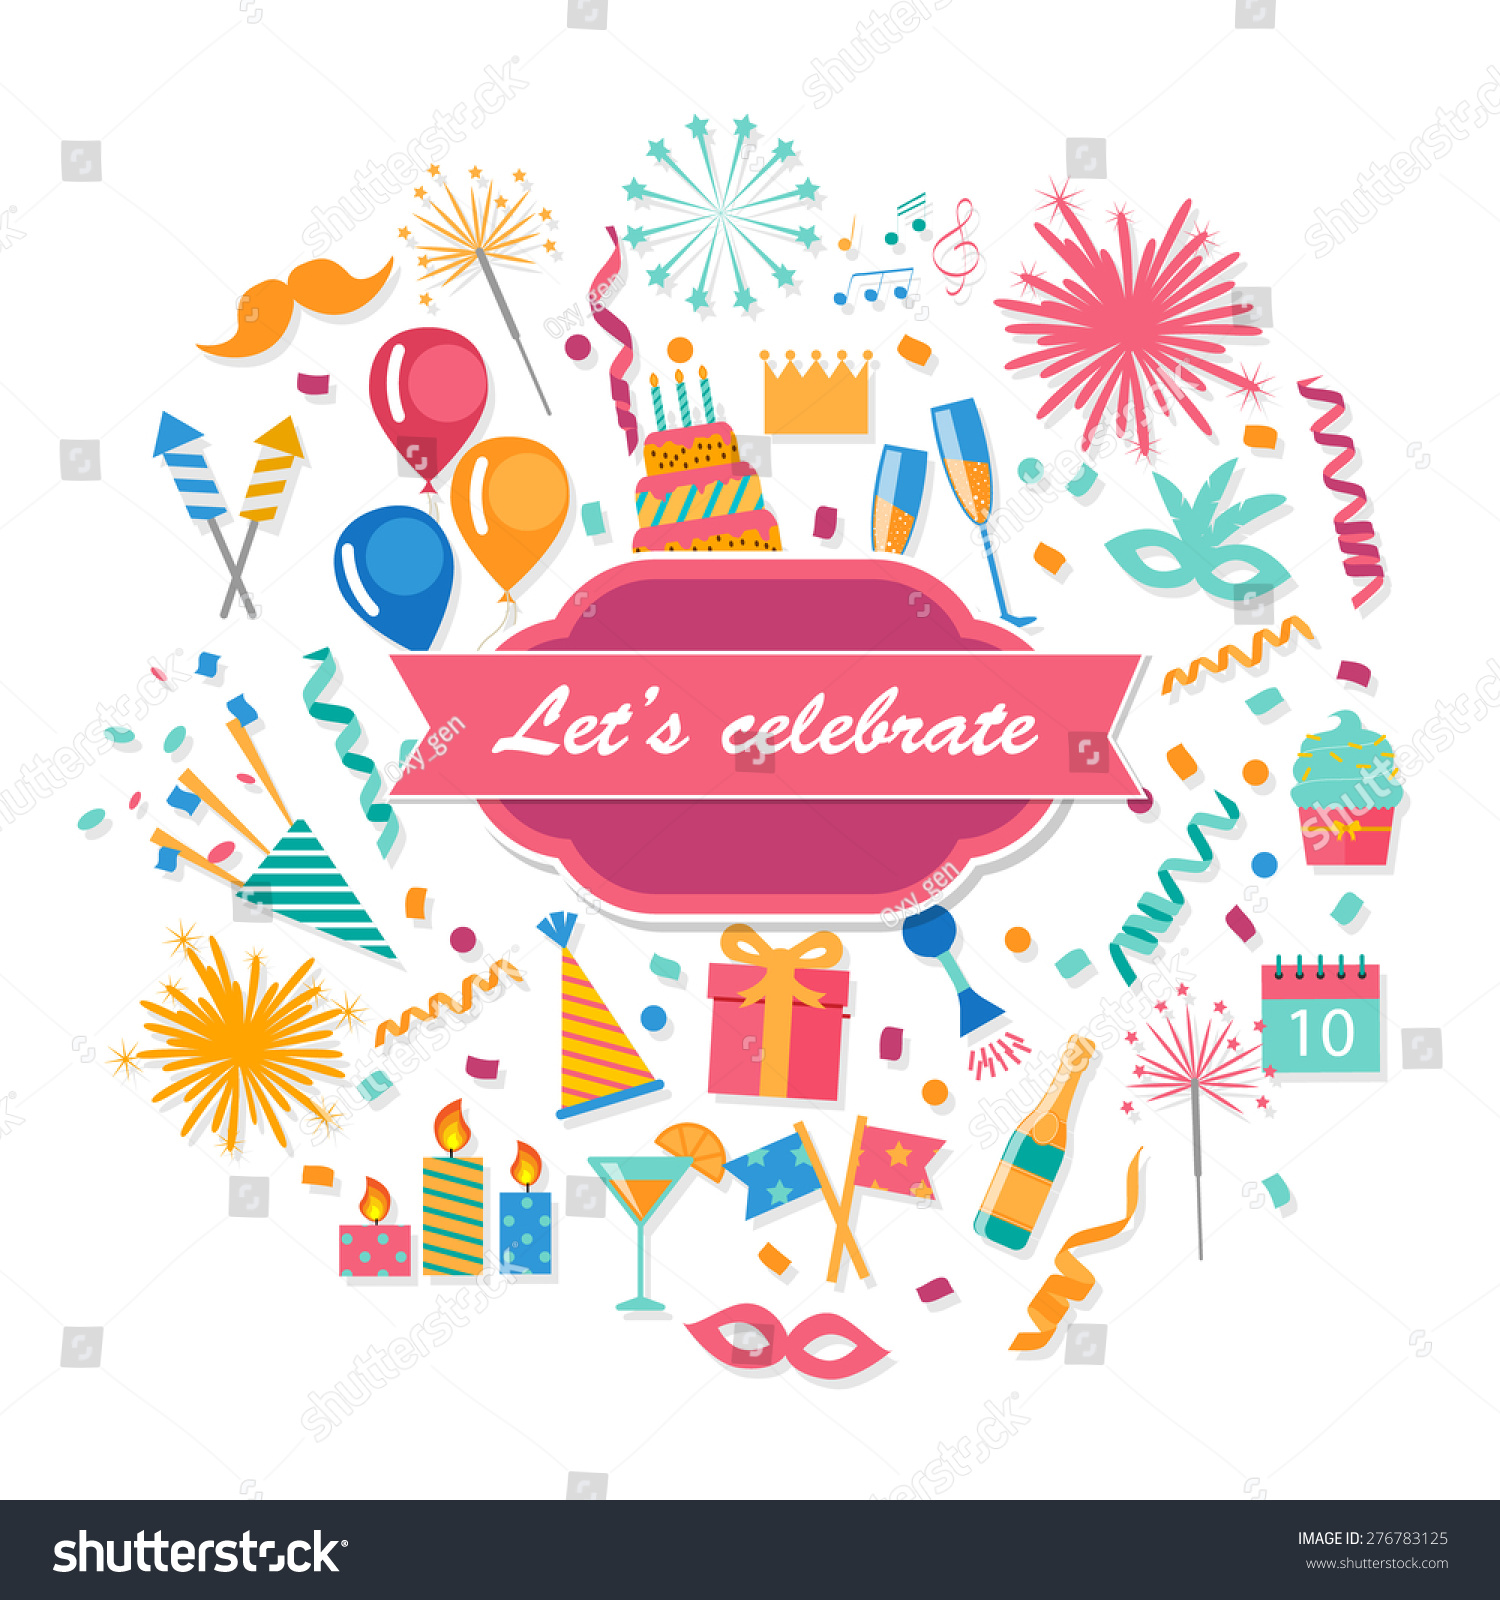 Celebration - Party And Celebration Background With Event Design Elements Vector Illustration Greeting Card Includes